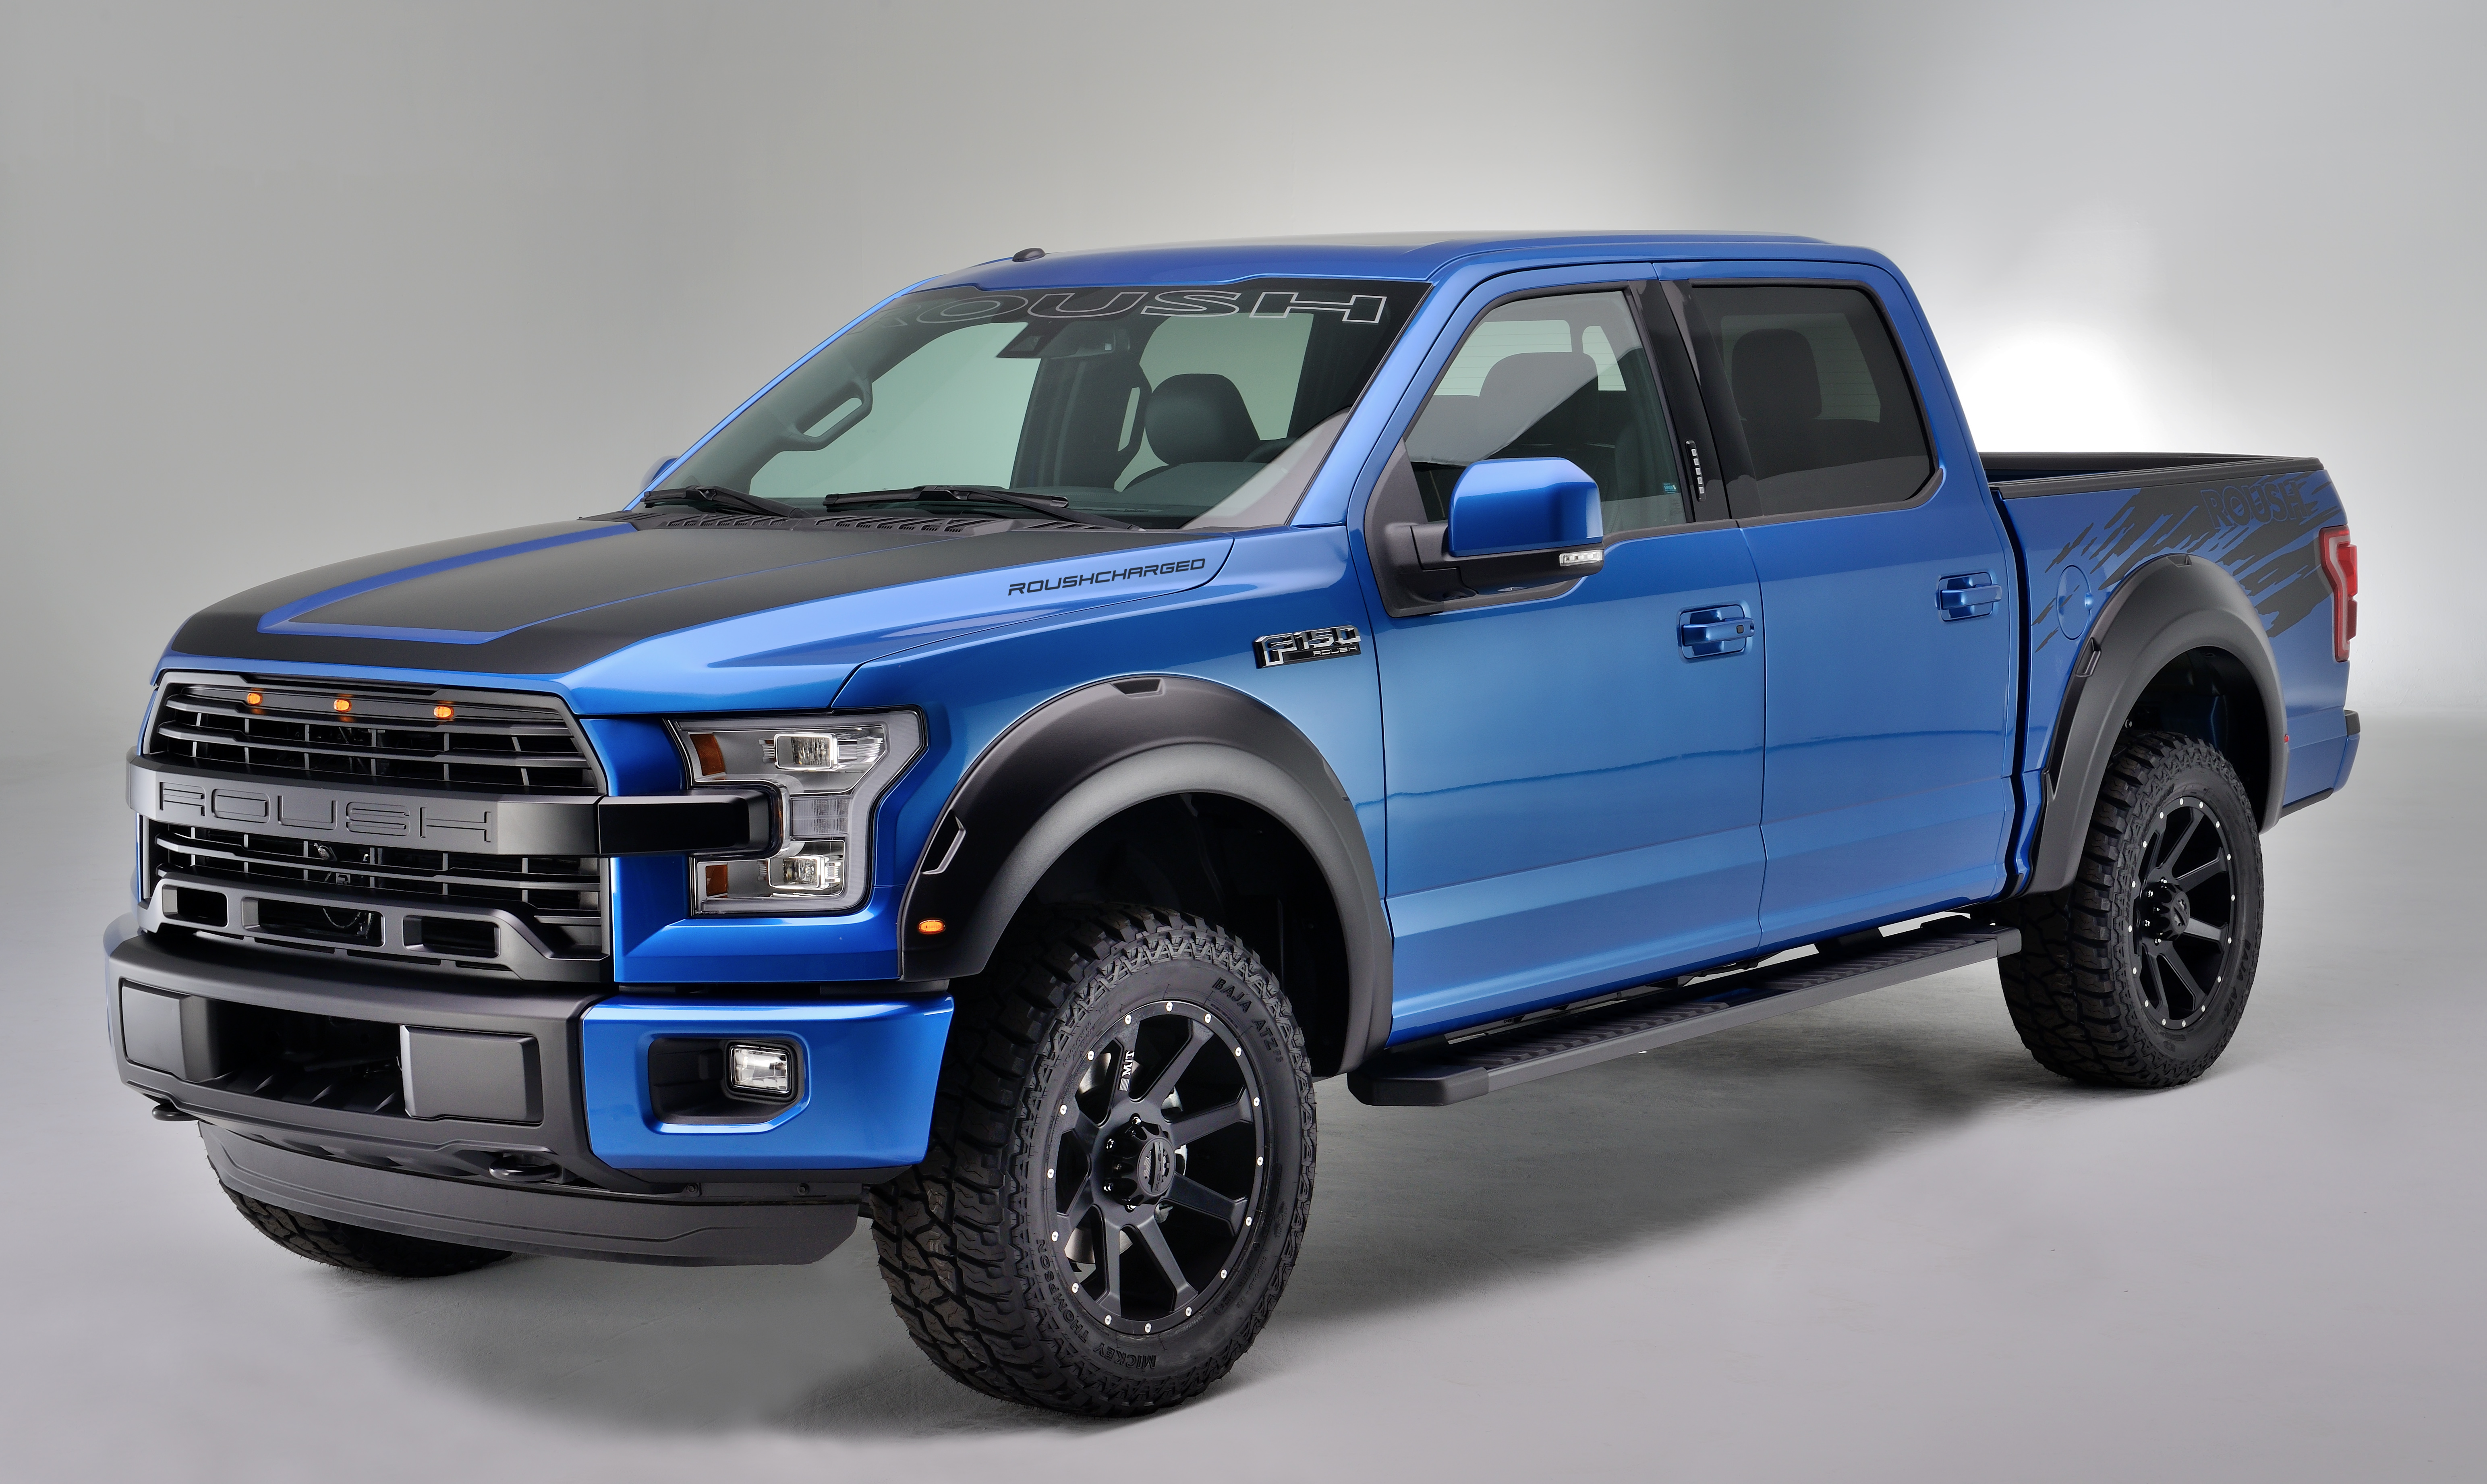 new 2016 roush f 150 with supercharger creates next evolution in high performance truck technology. Black Bedroom Furniture Sets. Home Design Ideas